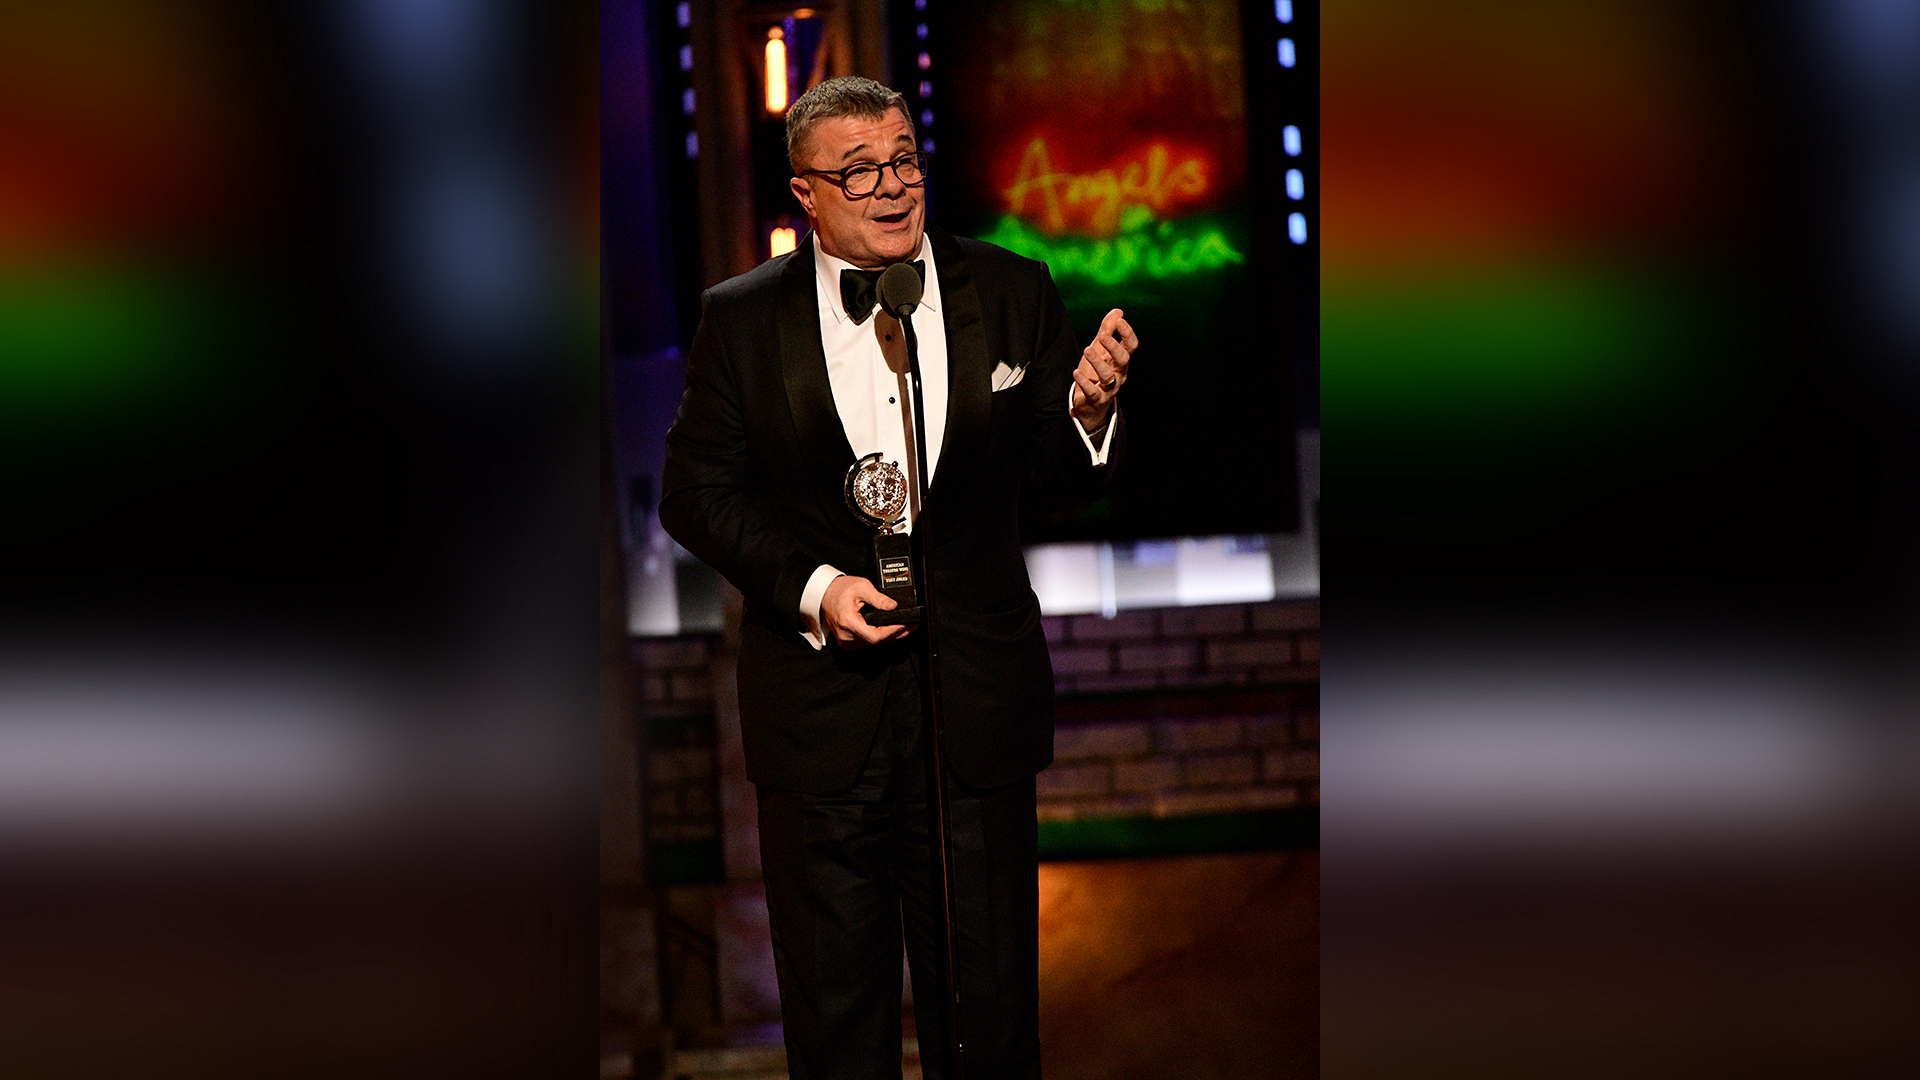 Nathan Lane wins Best Featured Actor in a Play at the 2018 Tony Awards.